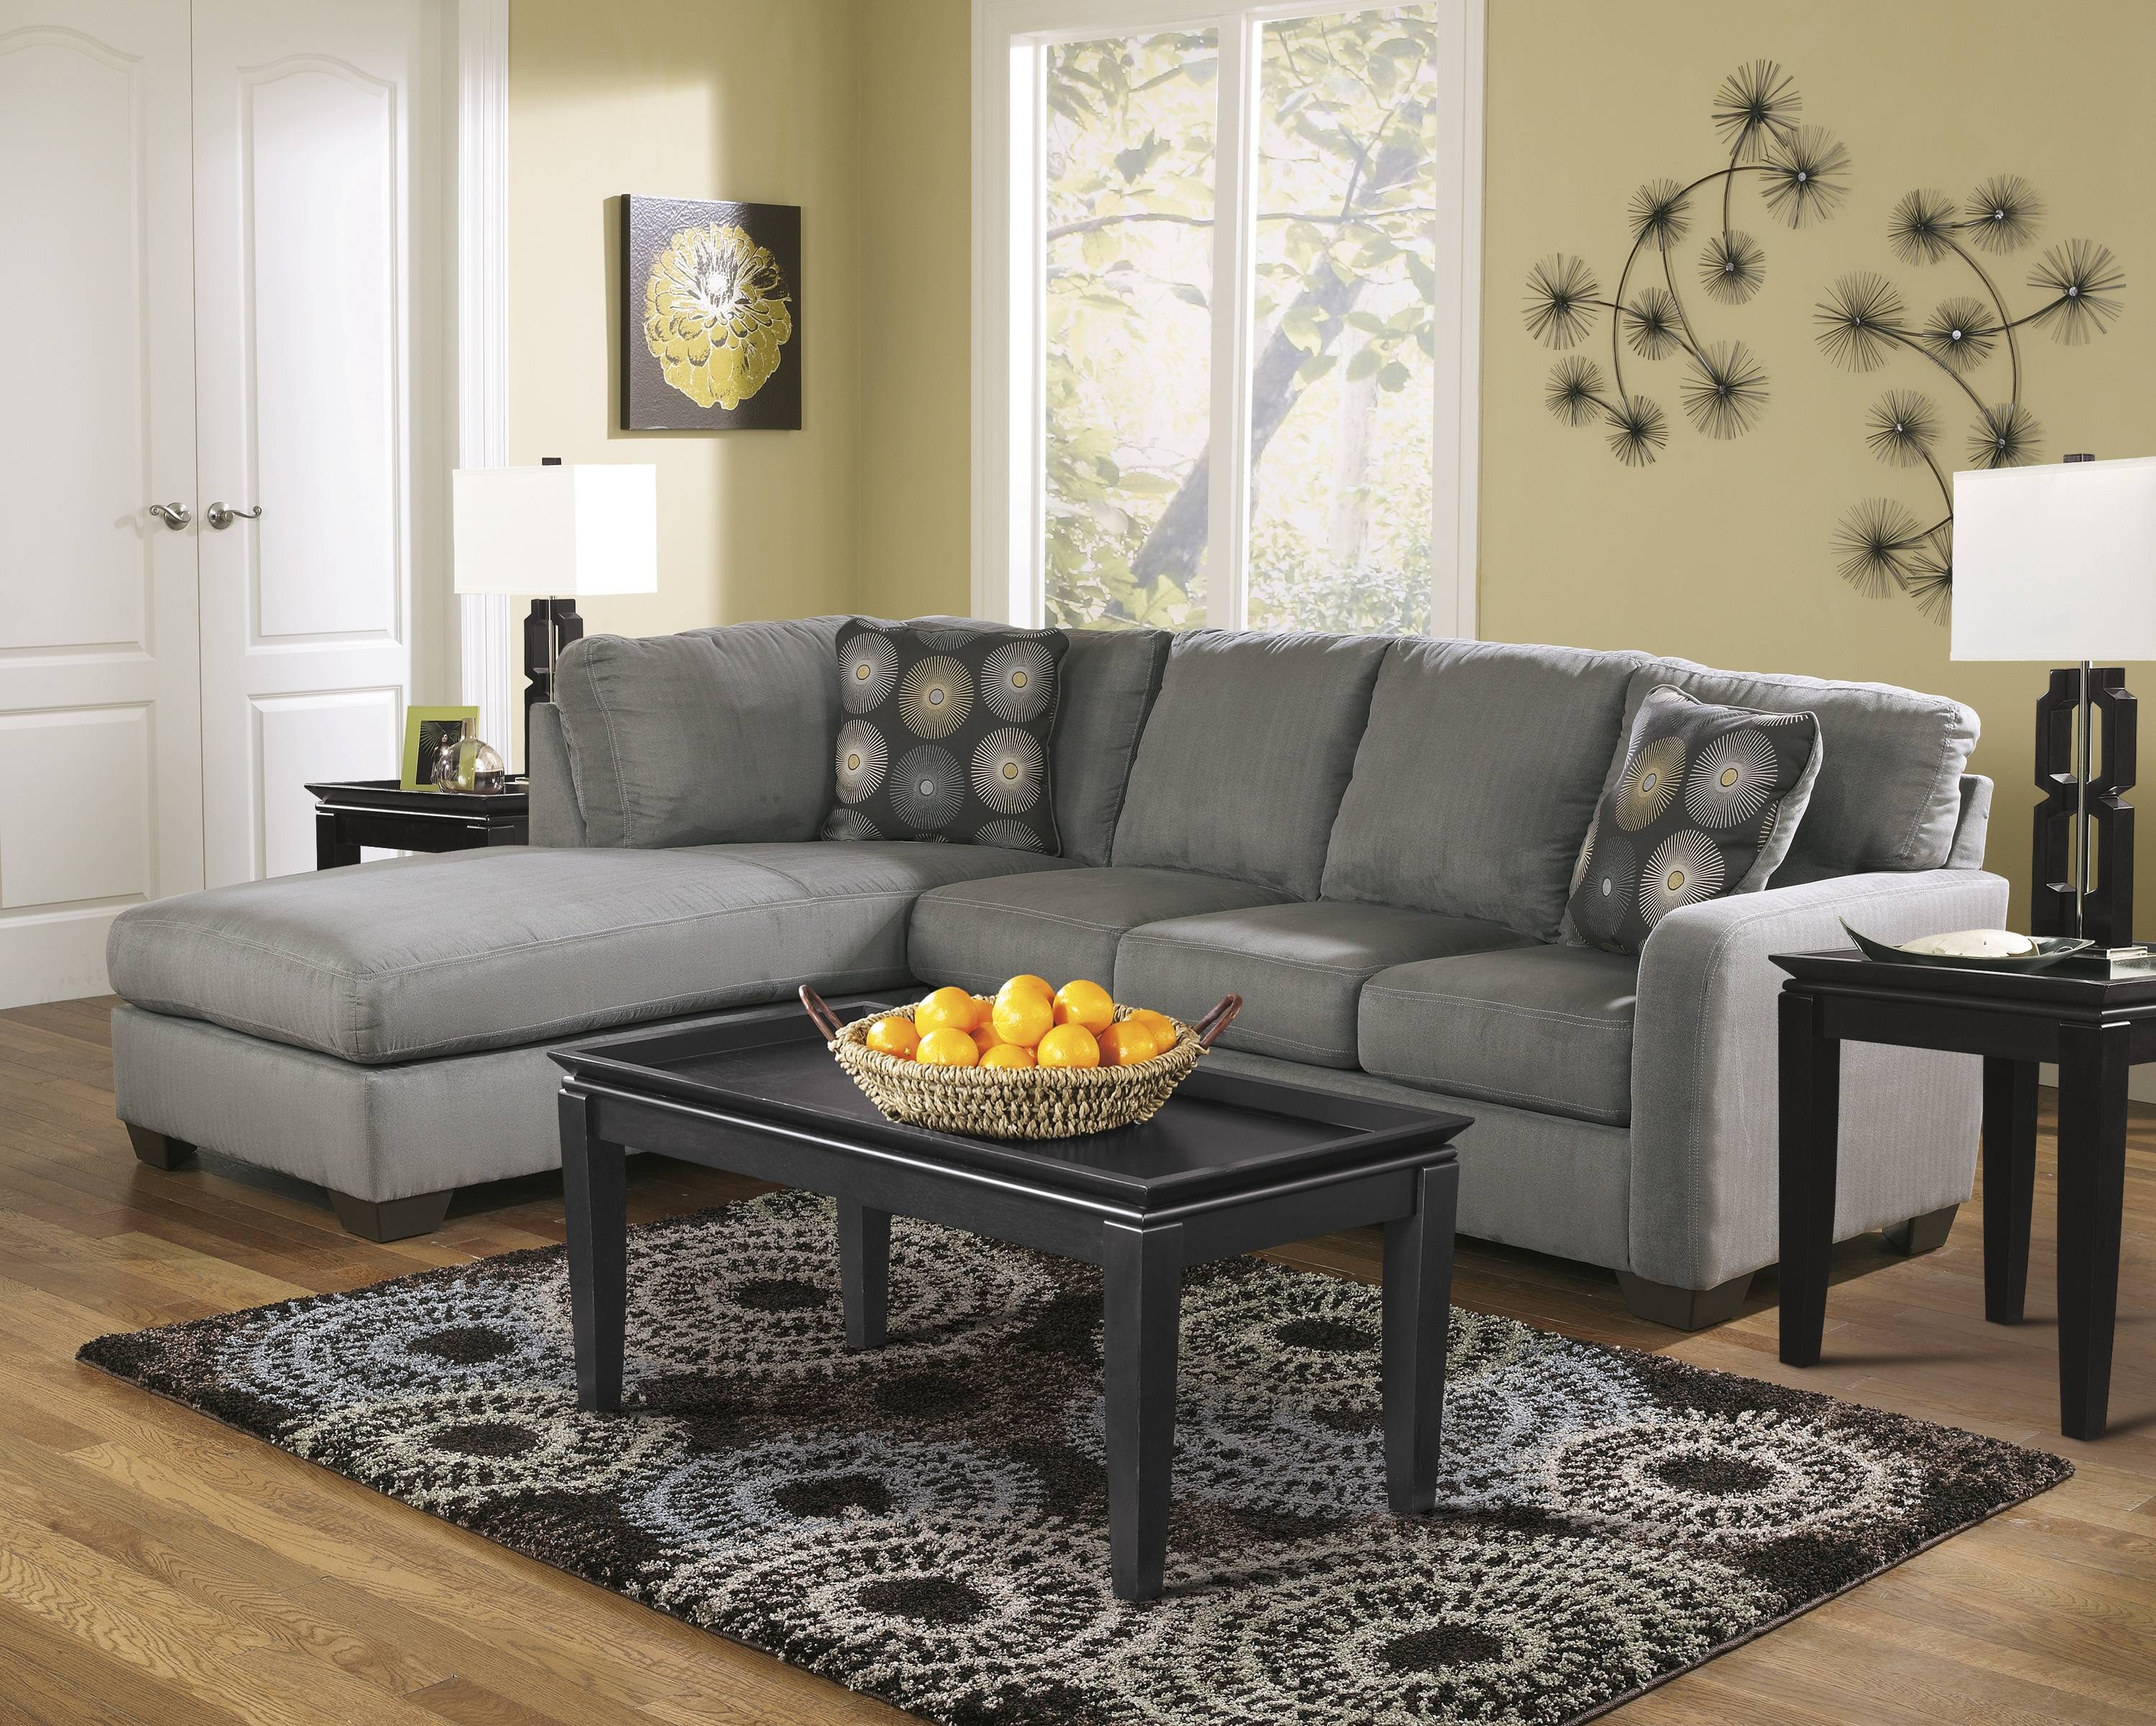 Coffee Table For Sectional Sofa With Chaise Top Ln8 | Umpsa 78 Sofas pertaining to Coffee Table for Sectional Sofa (Image 8 of 30)